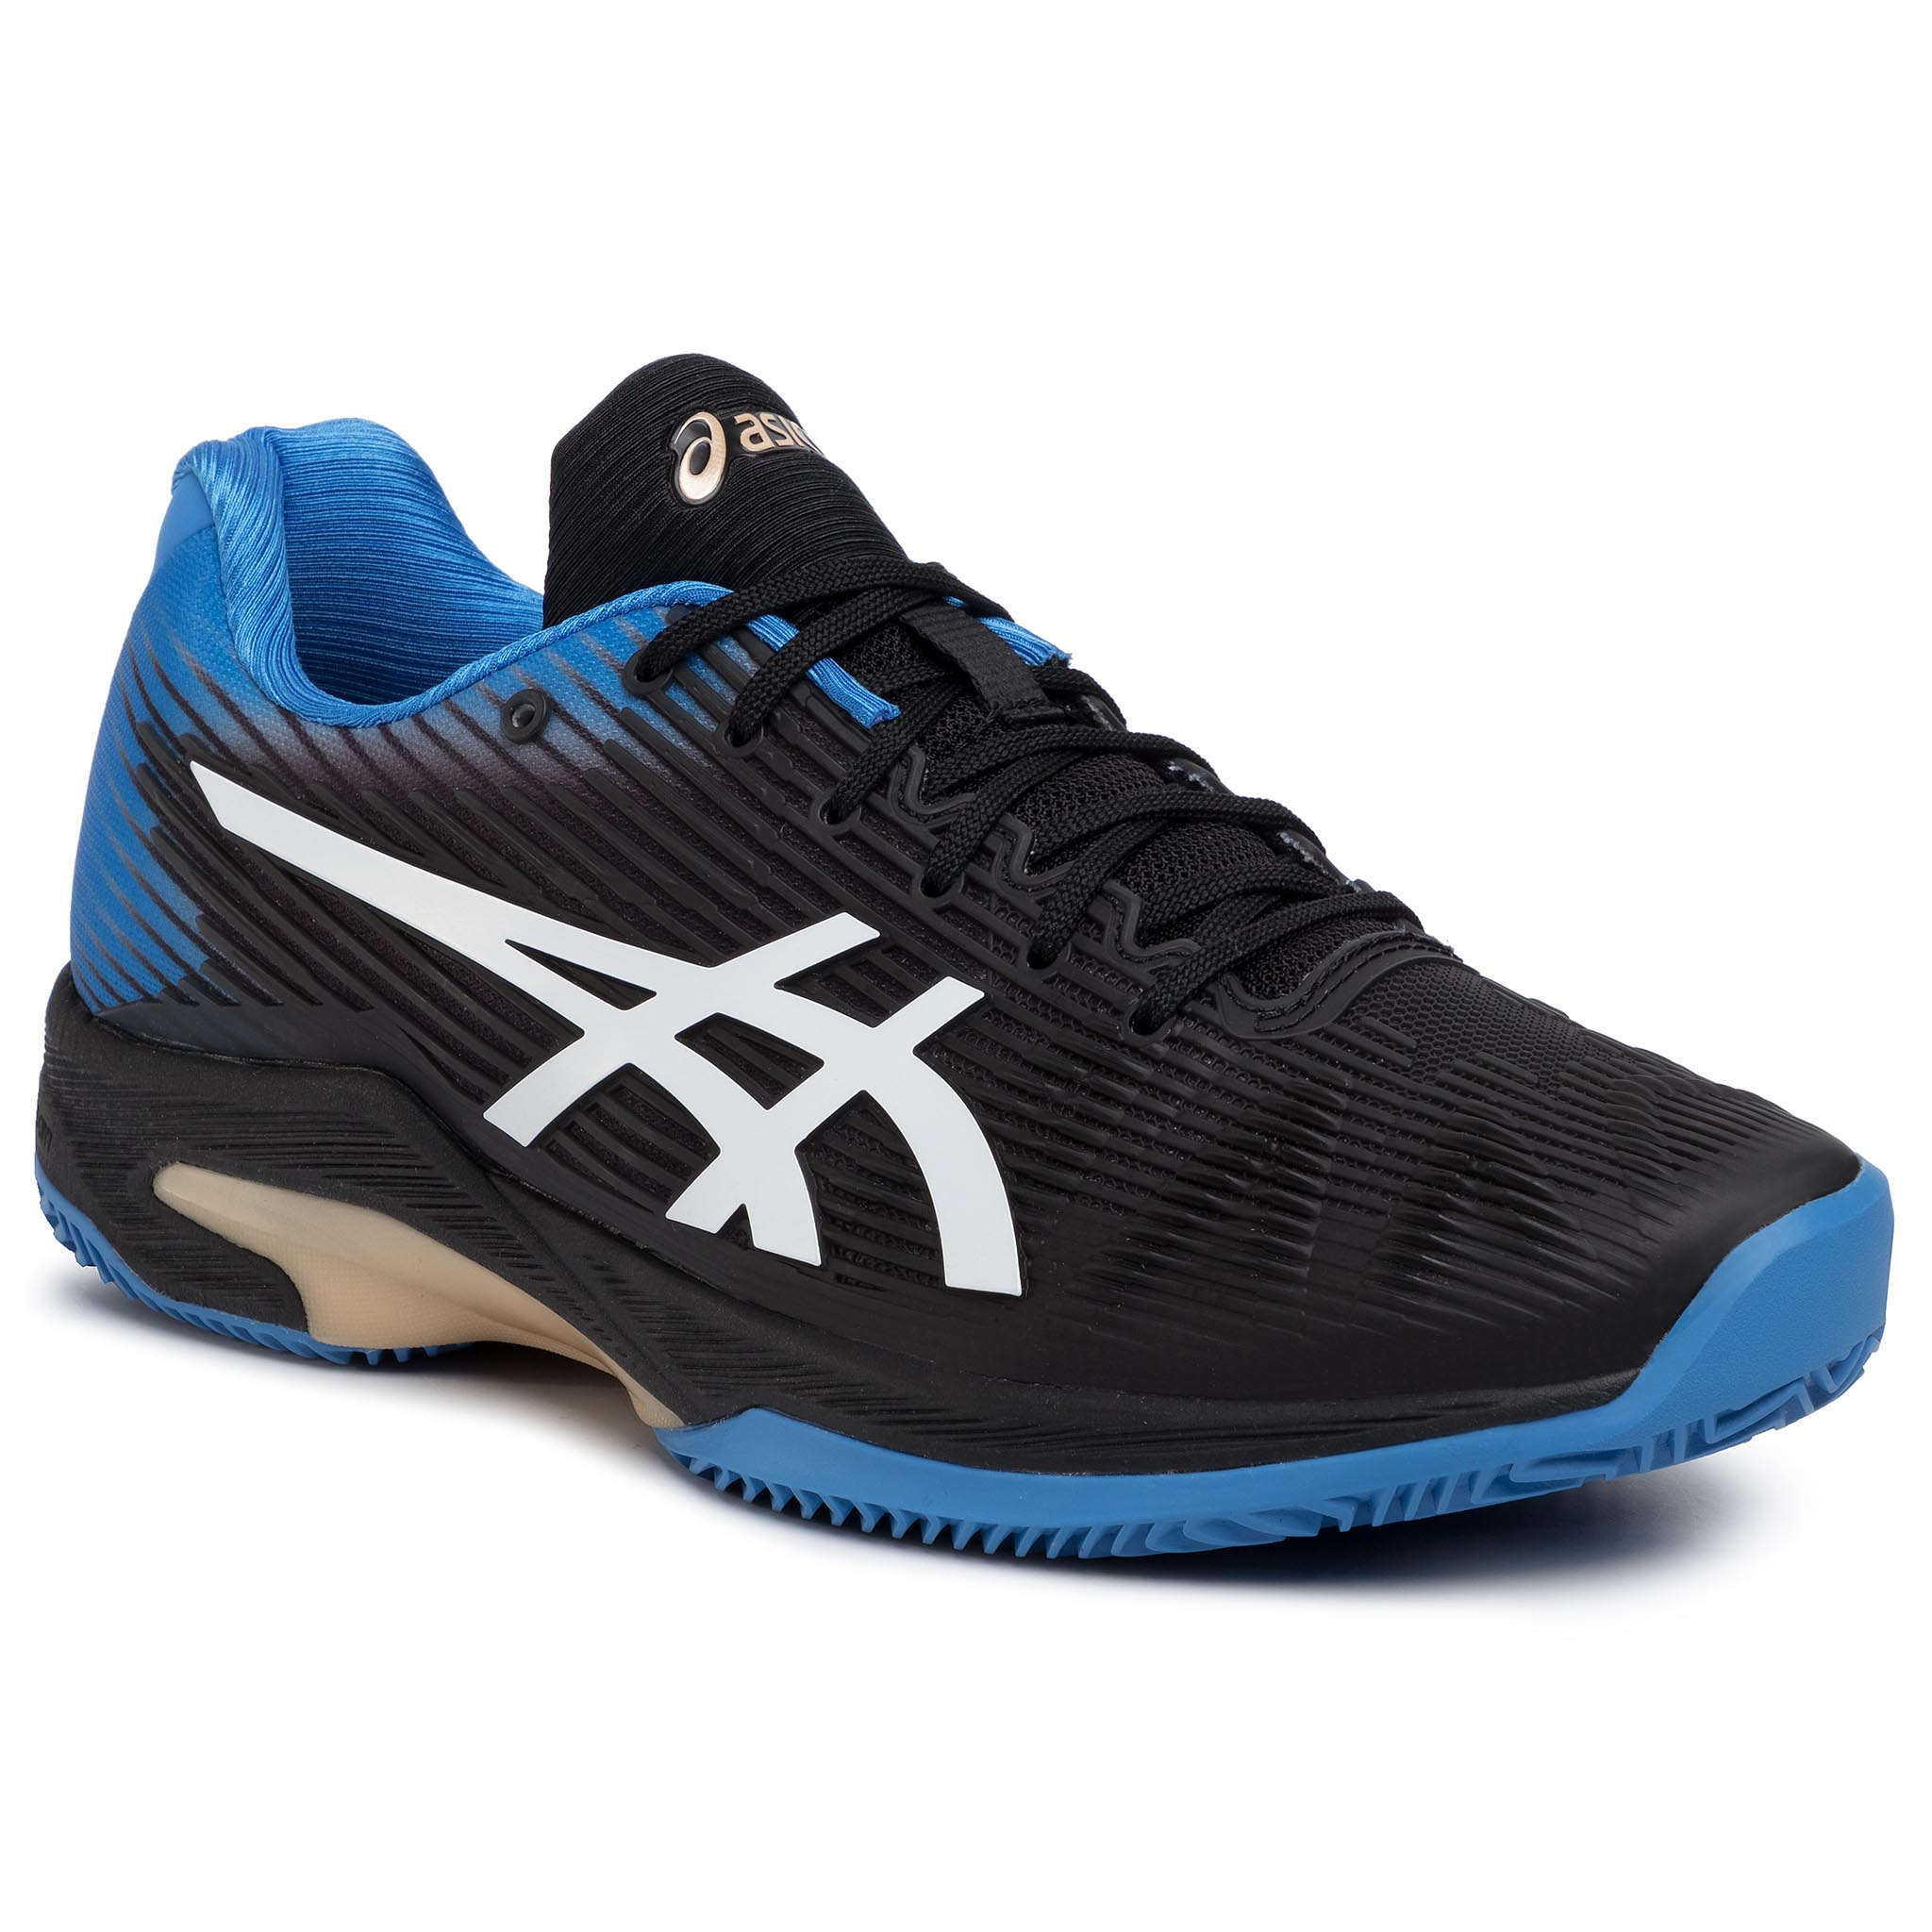 Pantofi Asics - Solution Speed Ff Clay 1041a004 Black/Blue Cost 012 imagine epantofi.ro 2021